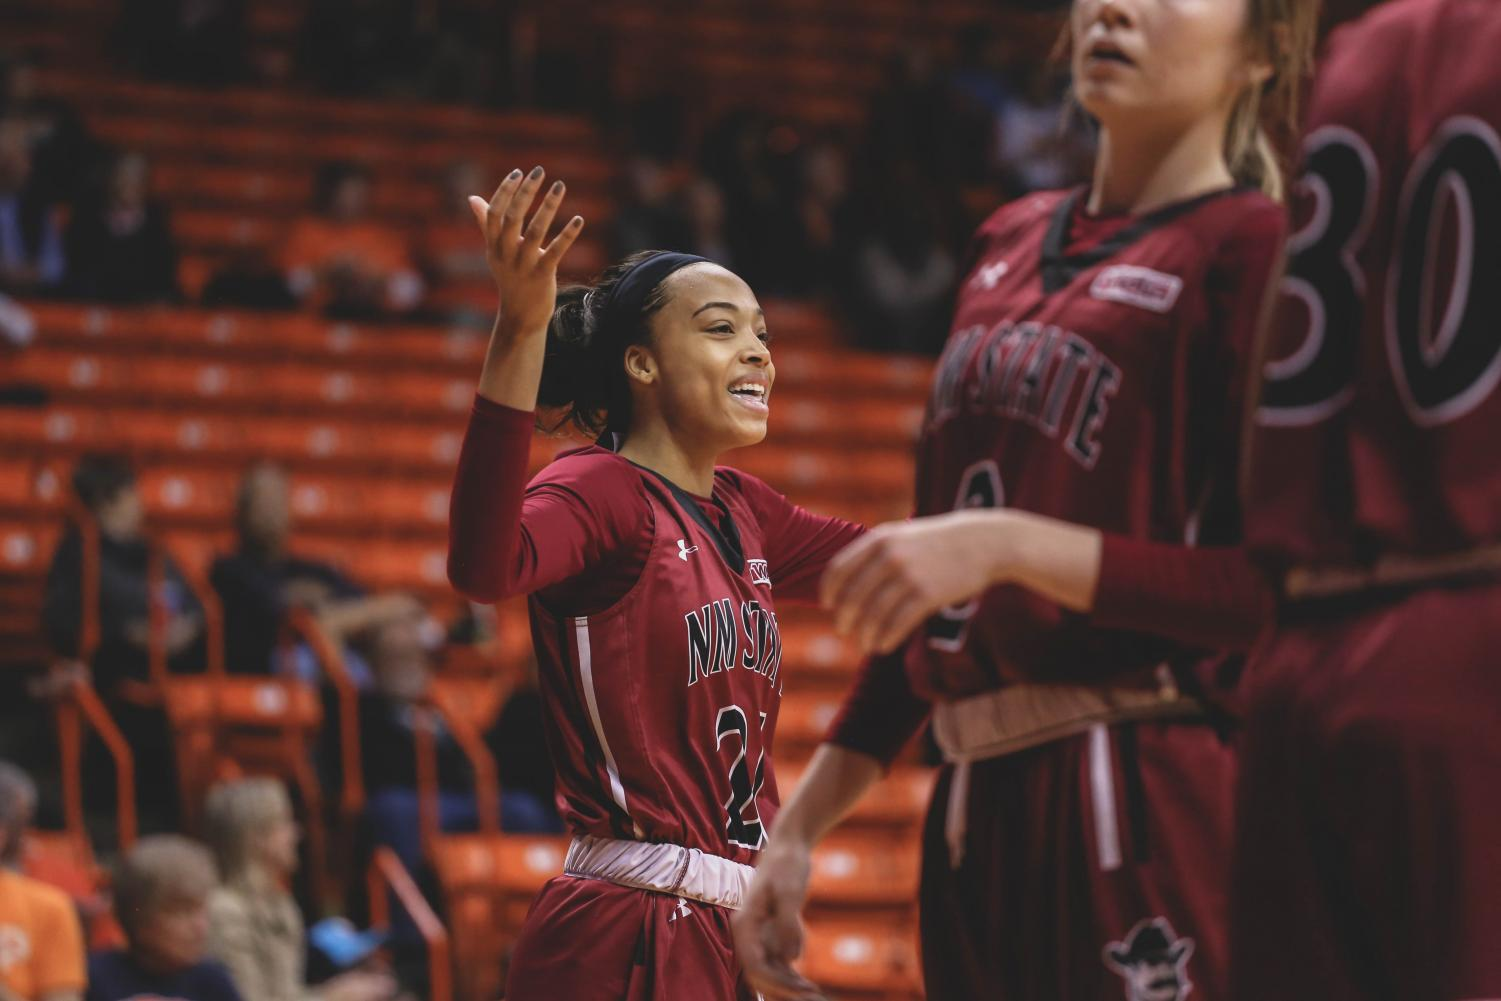 NMSU+defense+is+fouled+at+a+game+against+UTEP+on+Saturday%2C+Nov.+17+at+the+Don+Haskins+Center.++